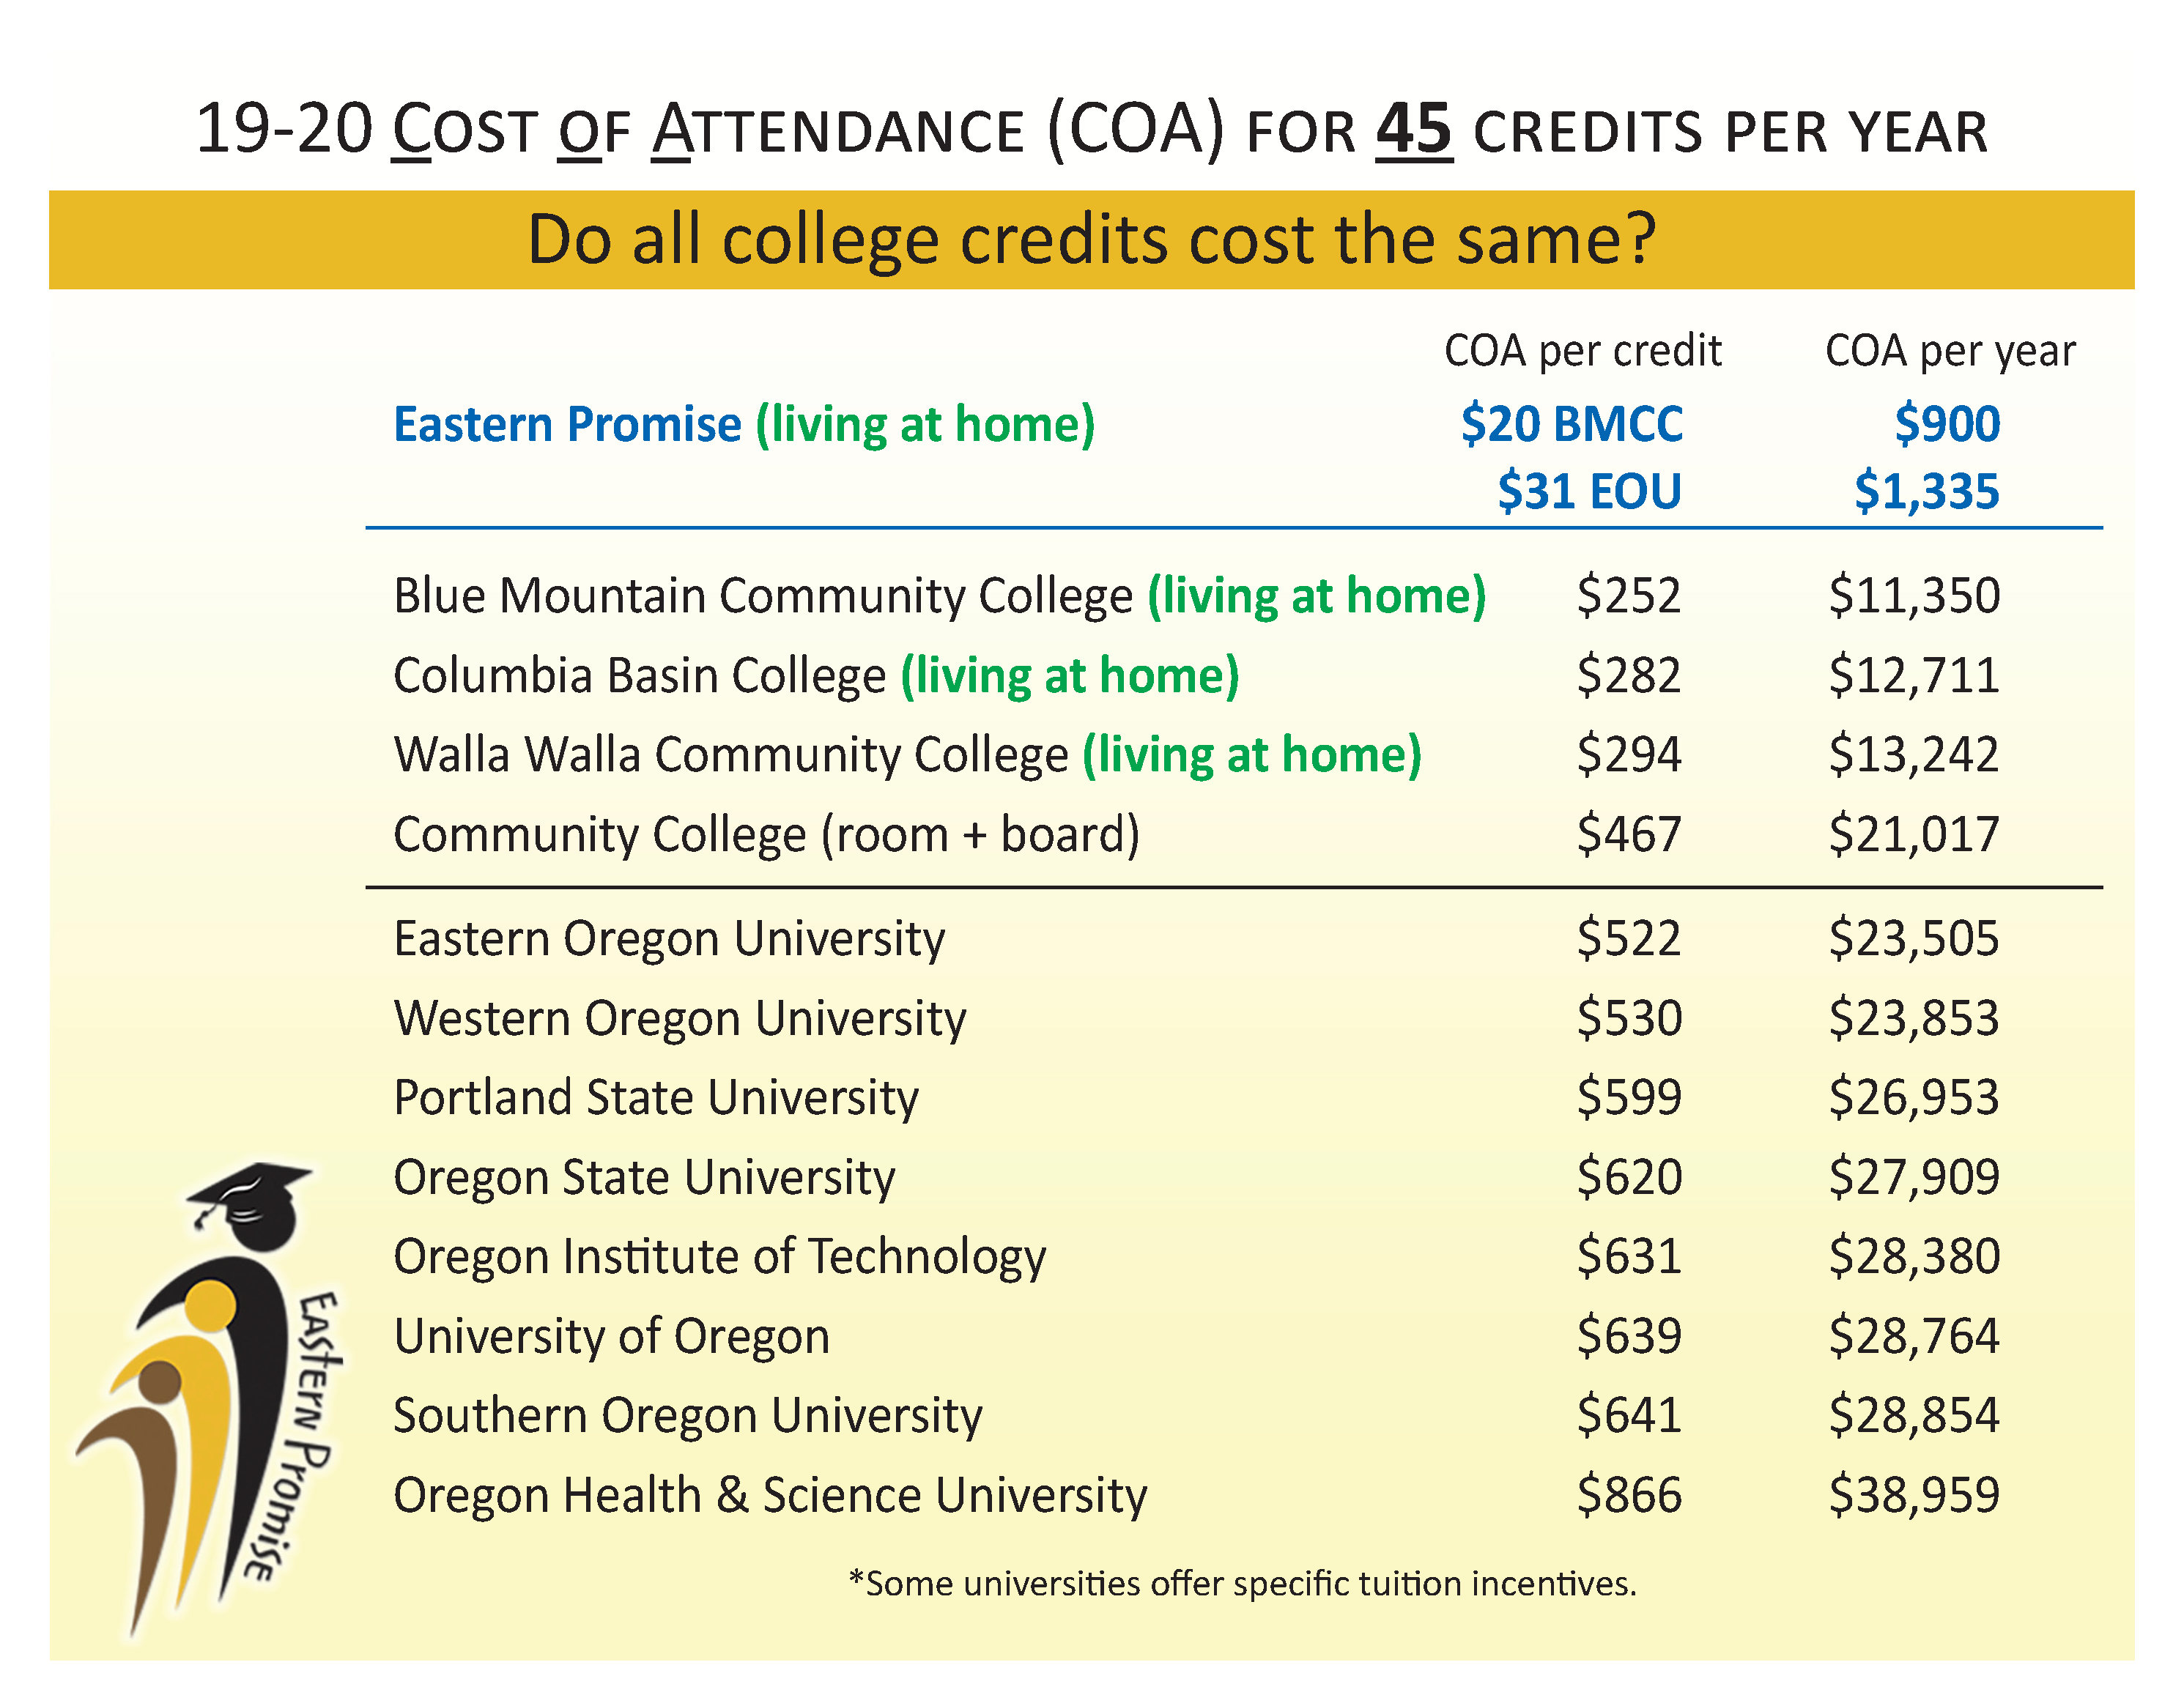 19-20 COST OF ATTENDANCE (COA) FOR 45 CREDITS PER YEAR